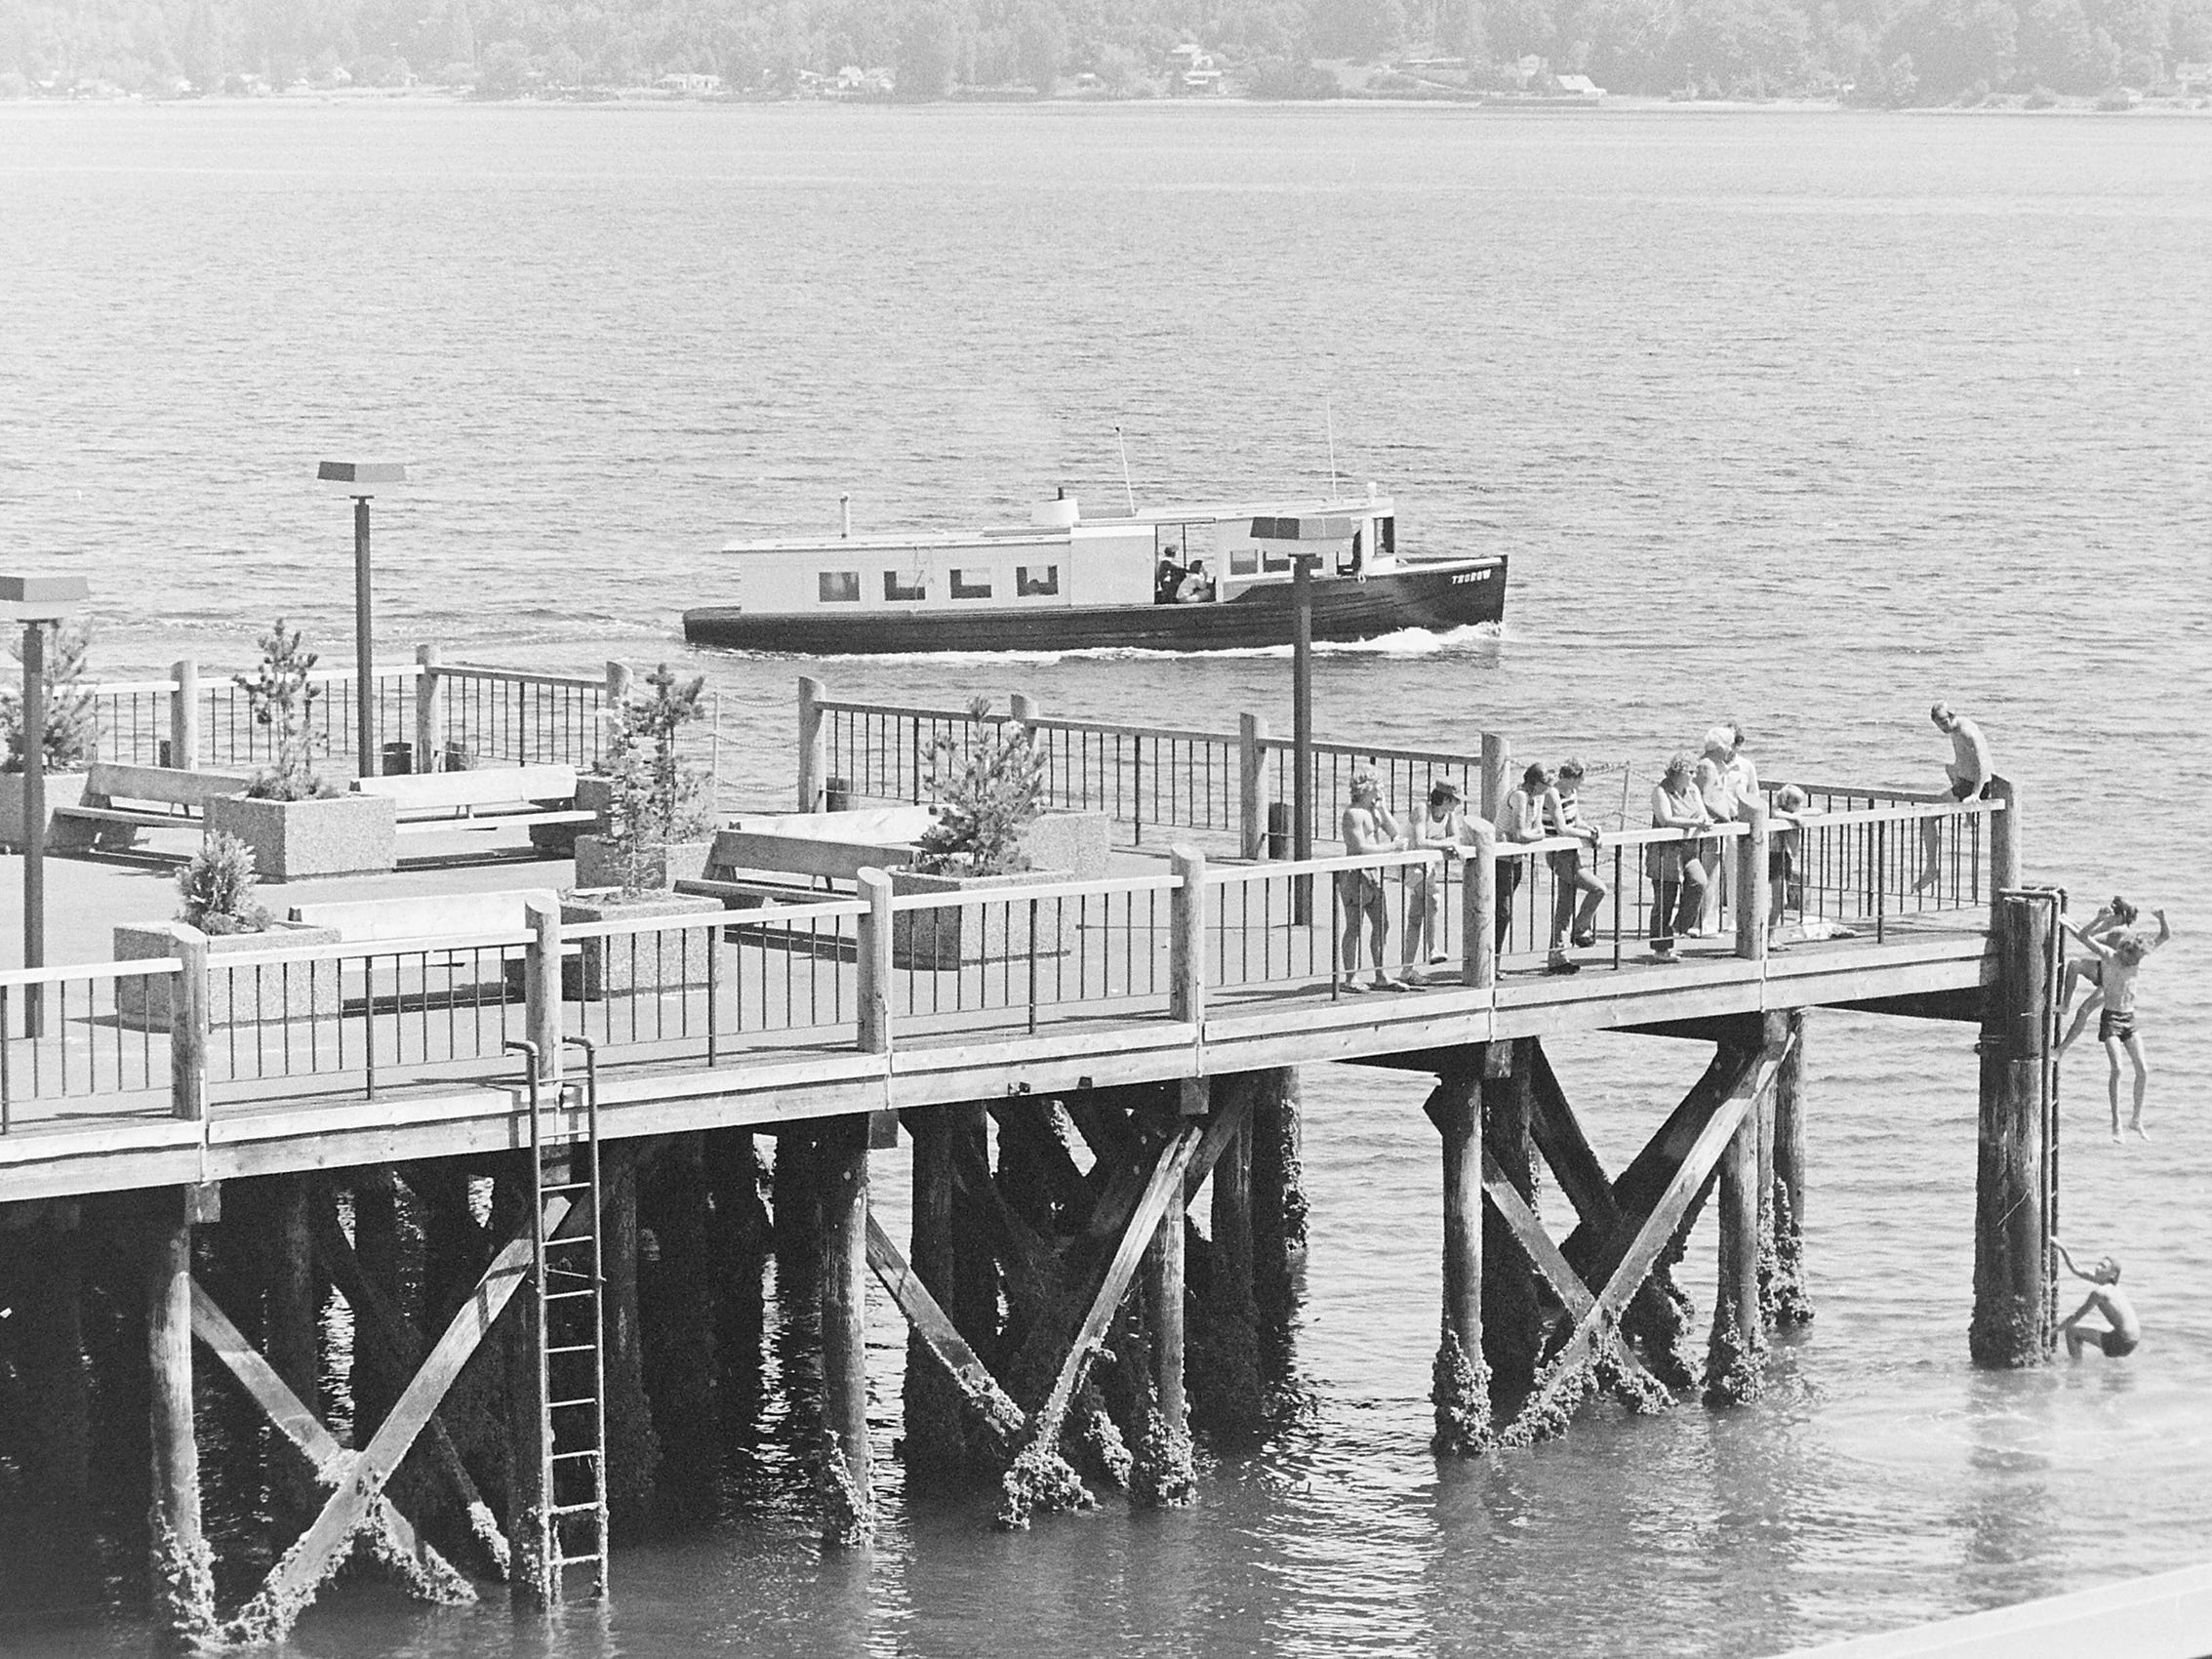 08/12/77